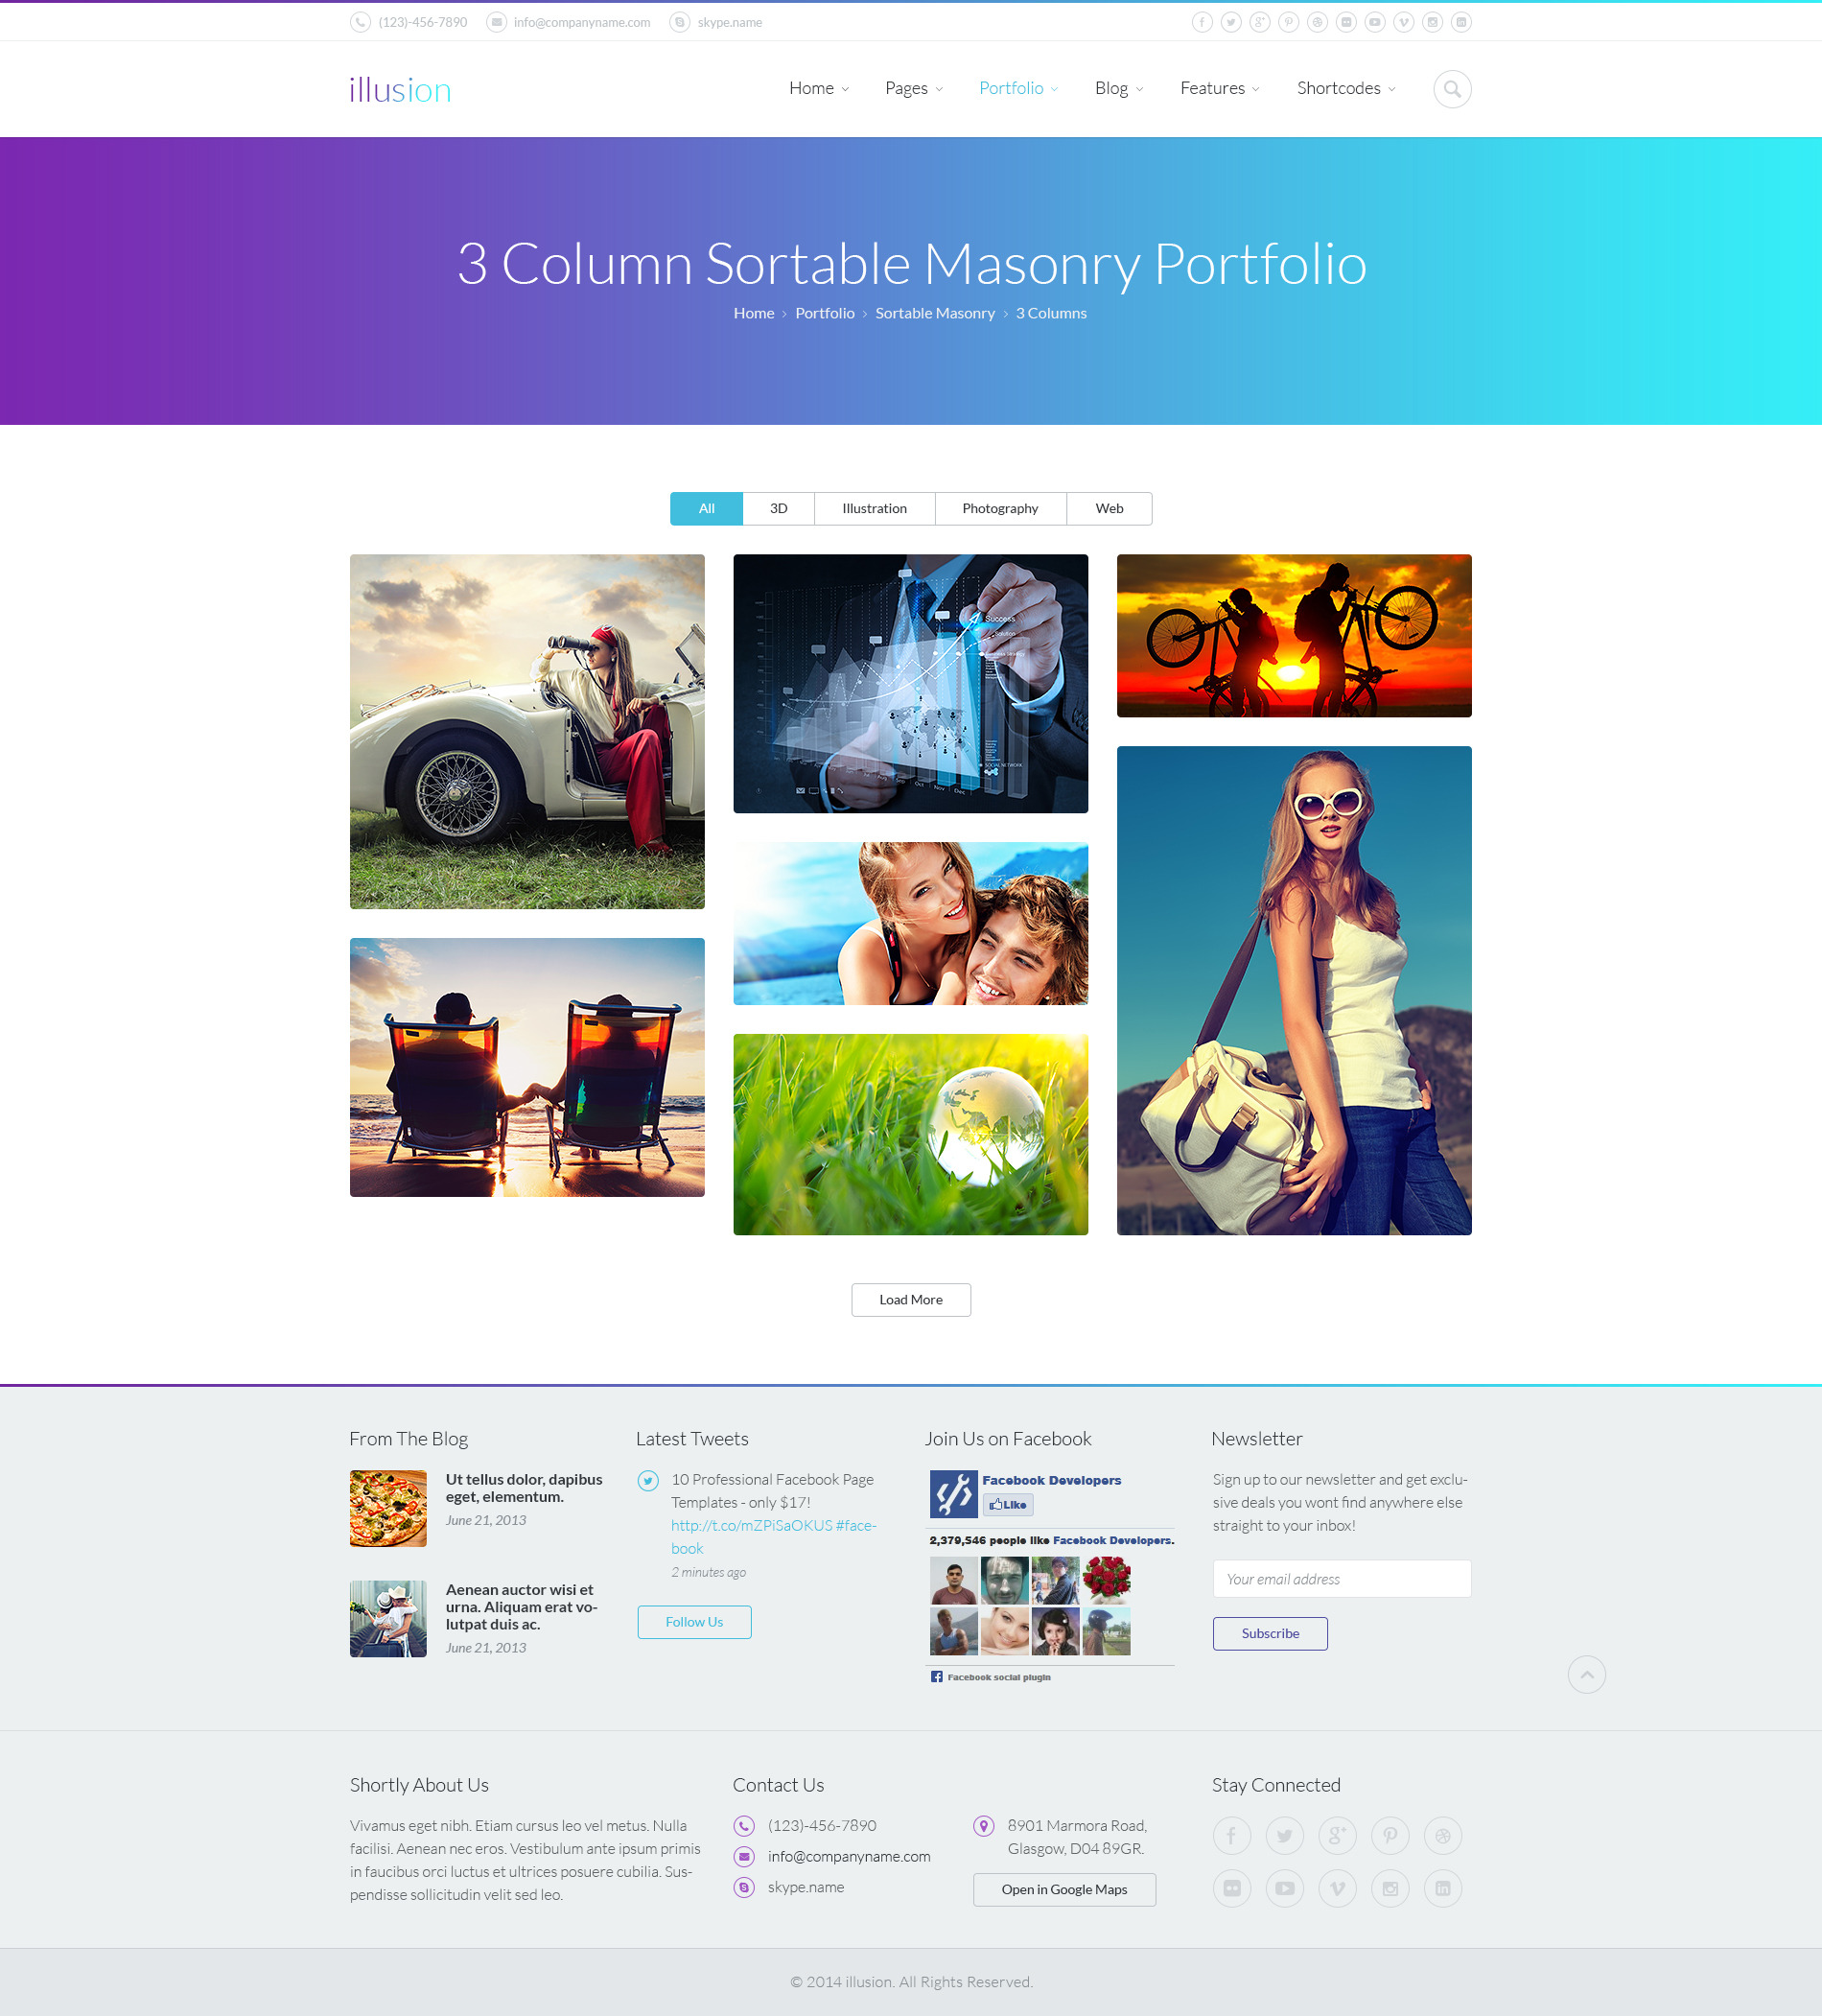 illusion - PSD Template